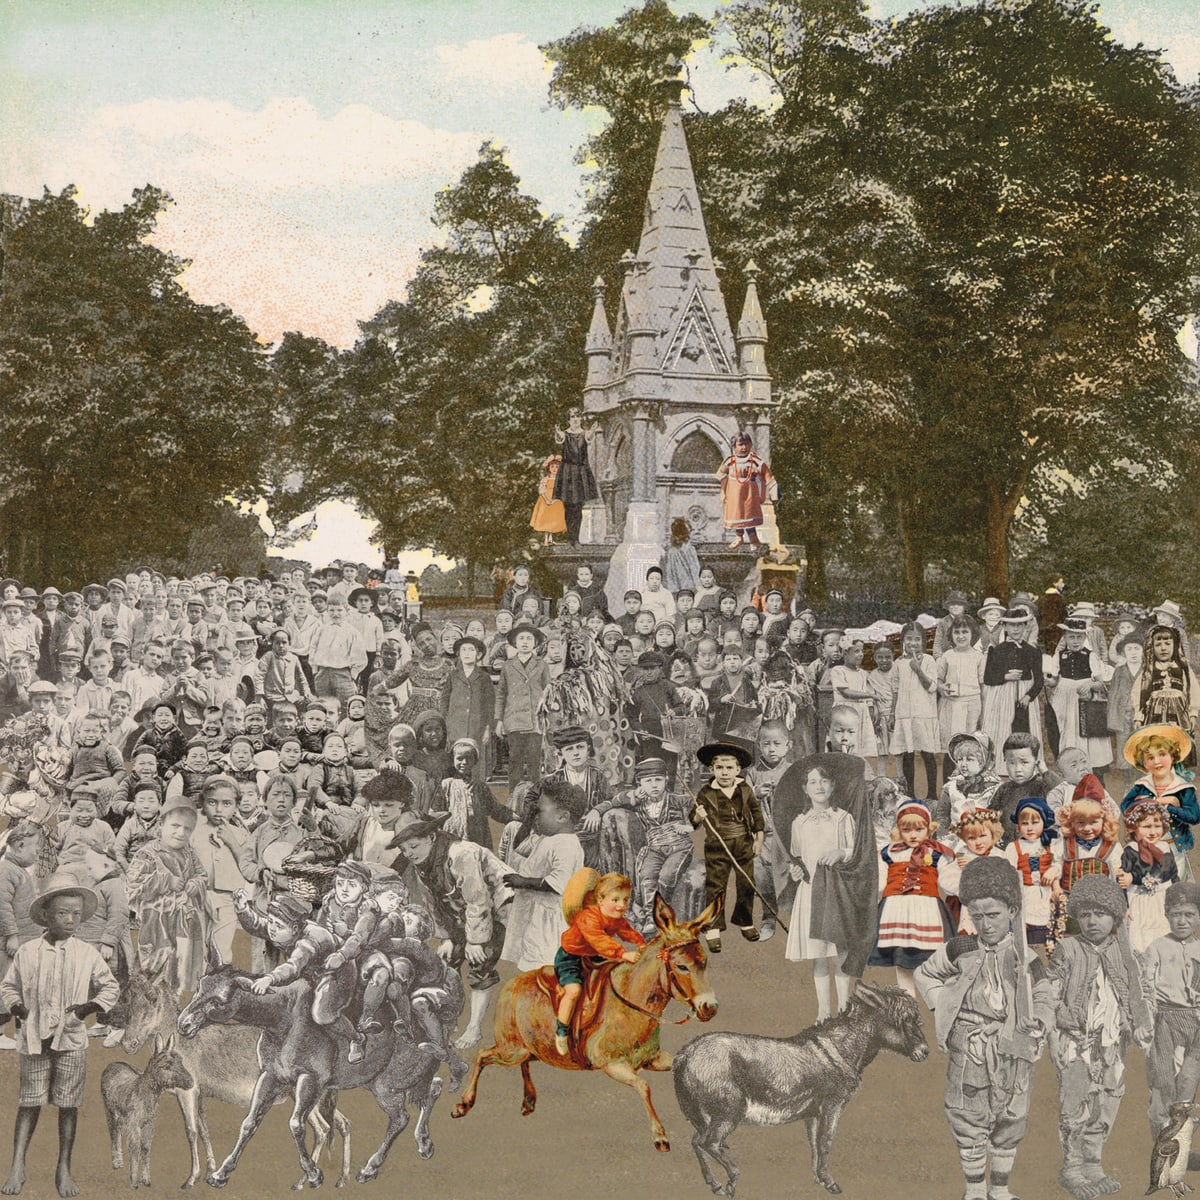 Peter Blake London- Regent's Park- The Runaway Donkeys, 2012 Silkscreen print on 410gsm Somerset Tub Sized Signed and numbered by artist. 66.6. x 65.2 cm Edition of 100